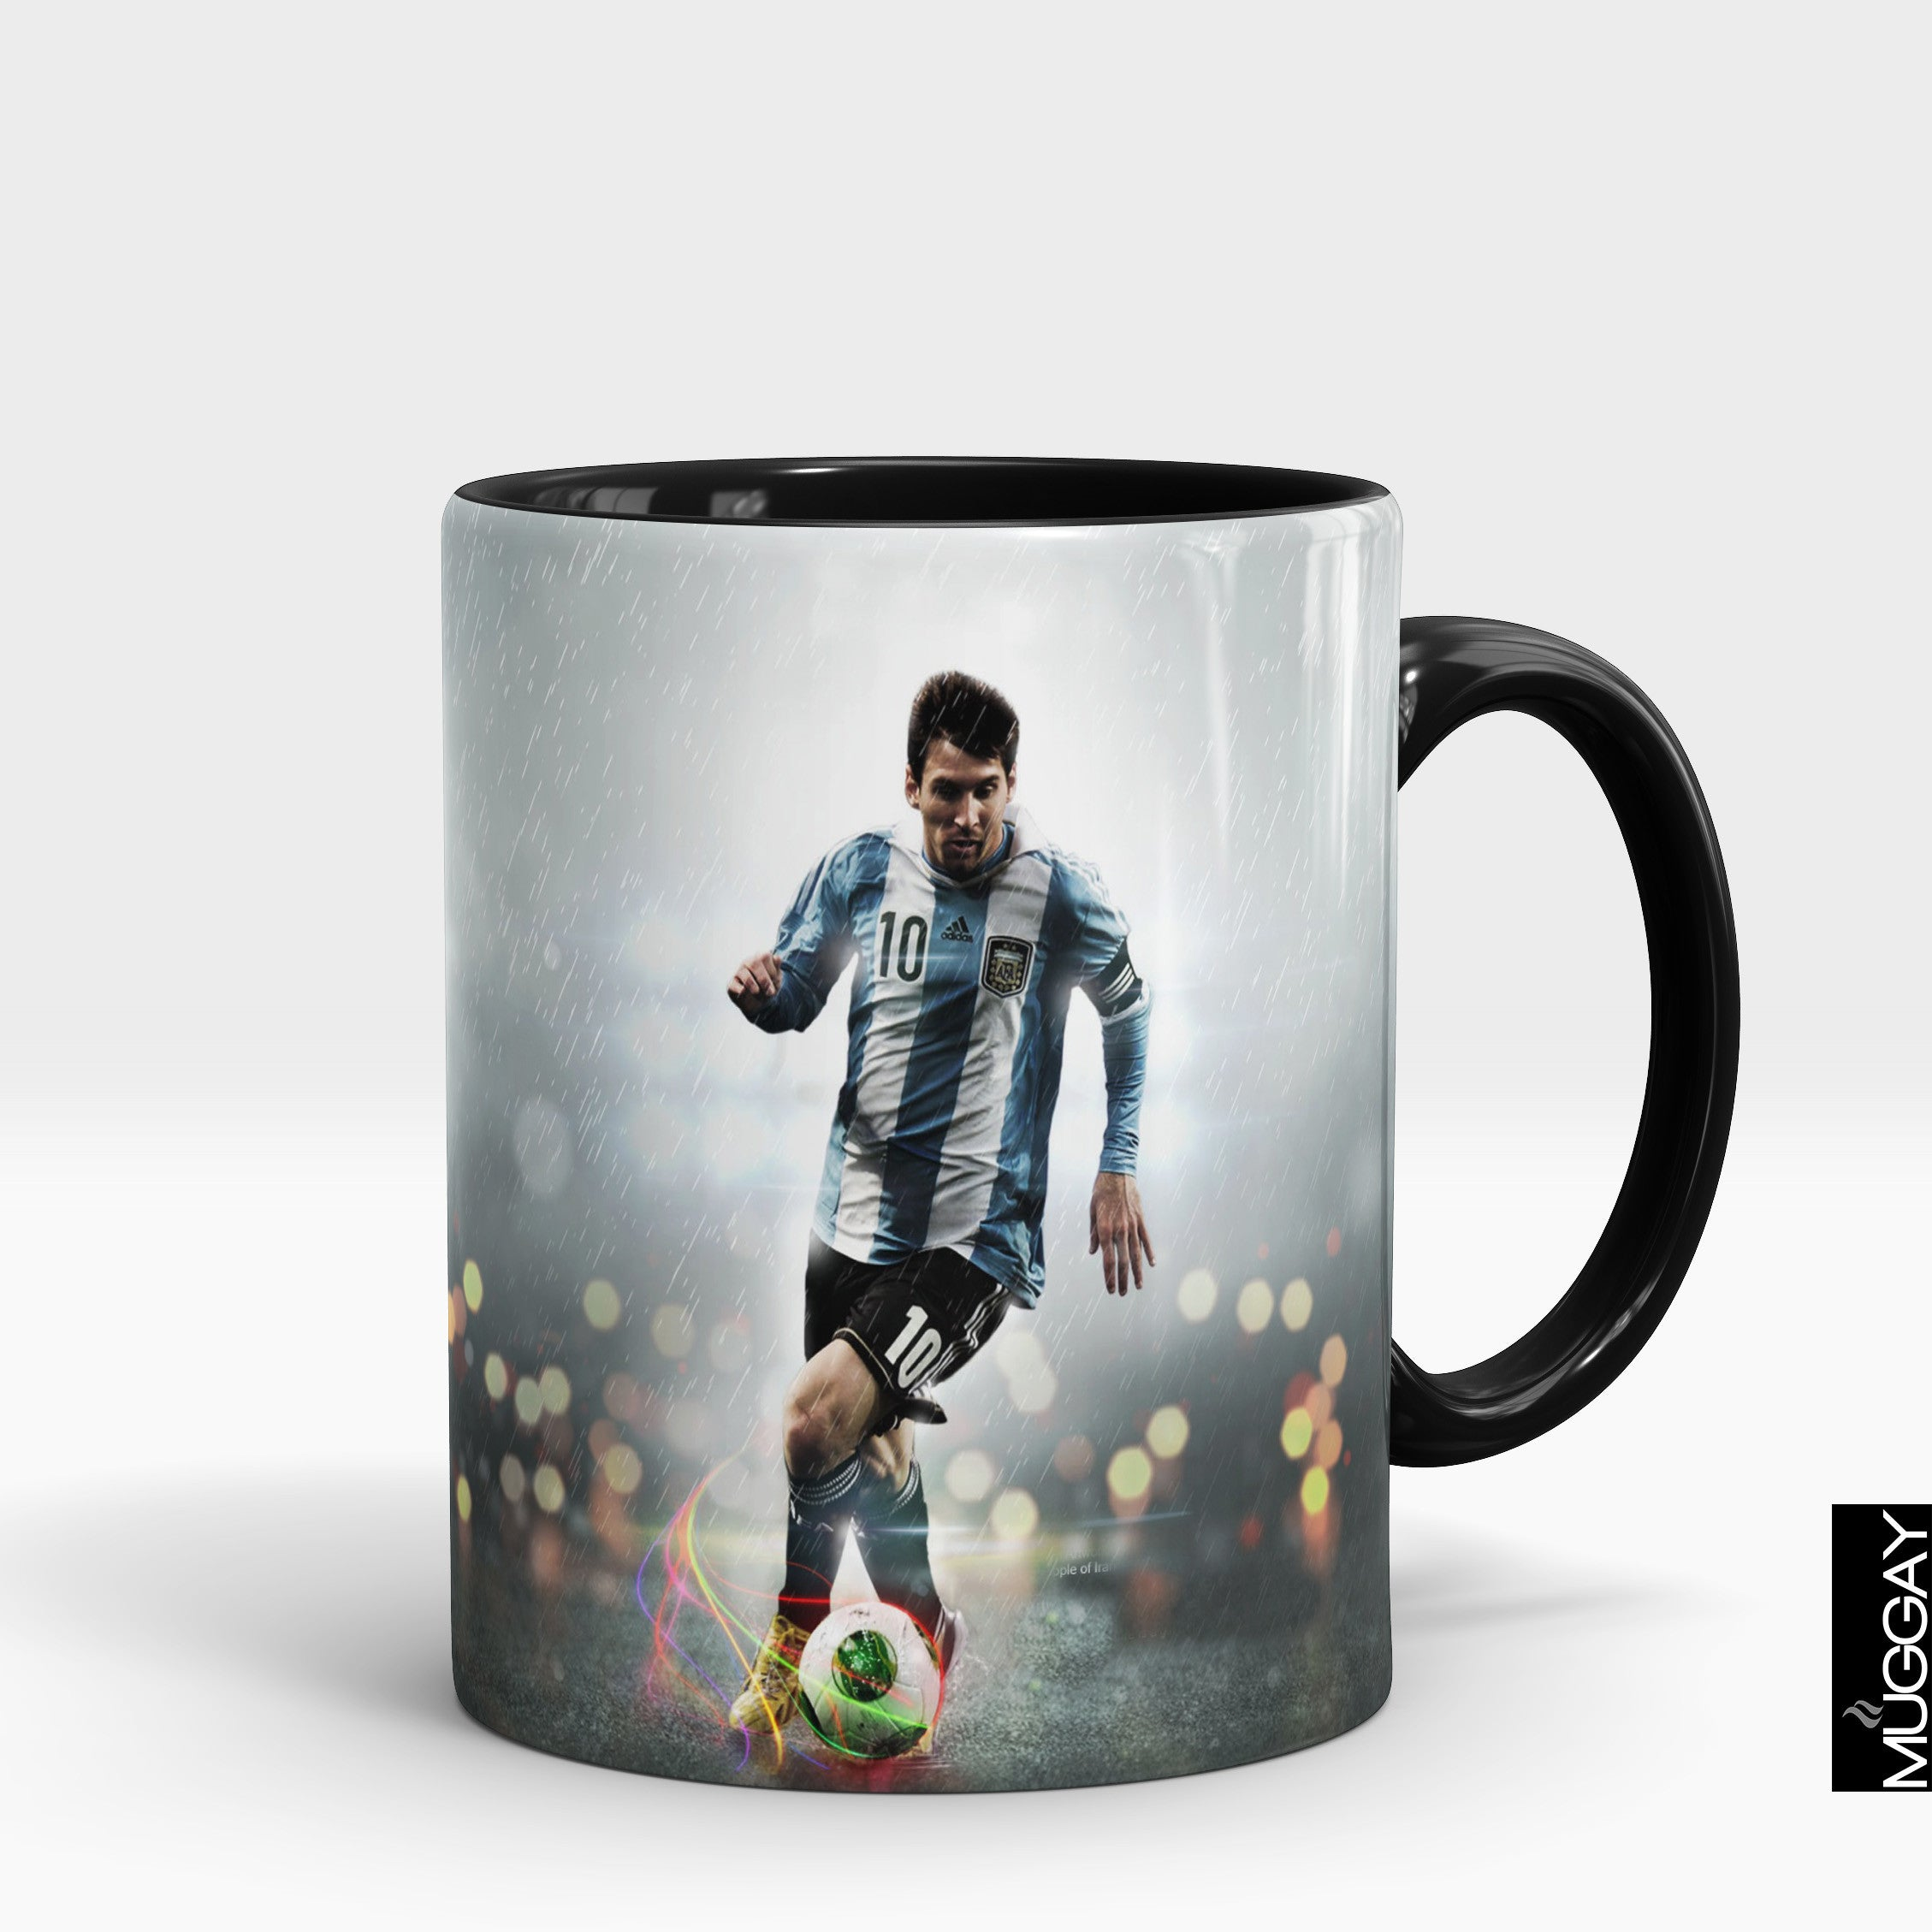 Football Theme mugs46